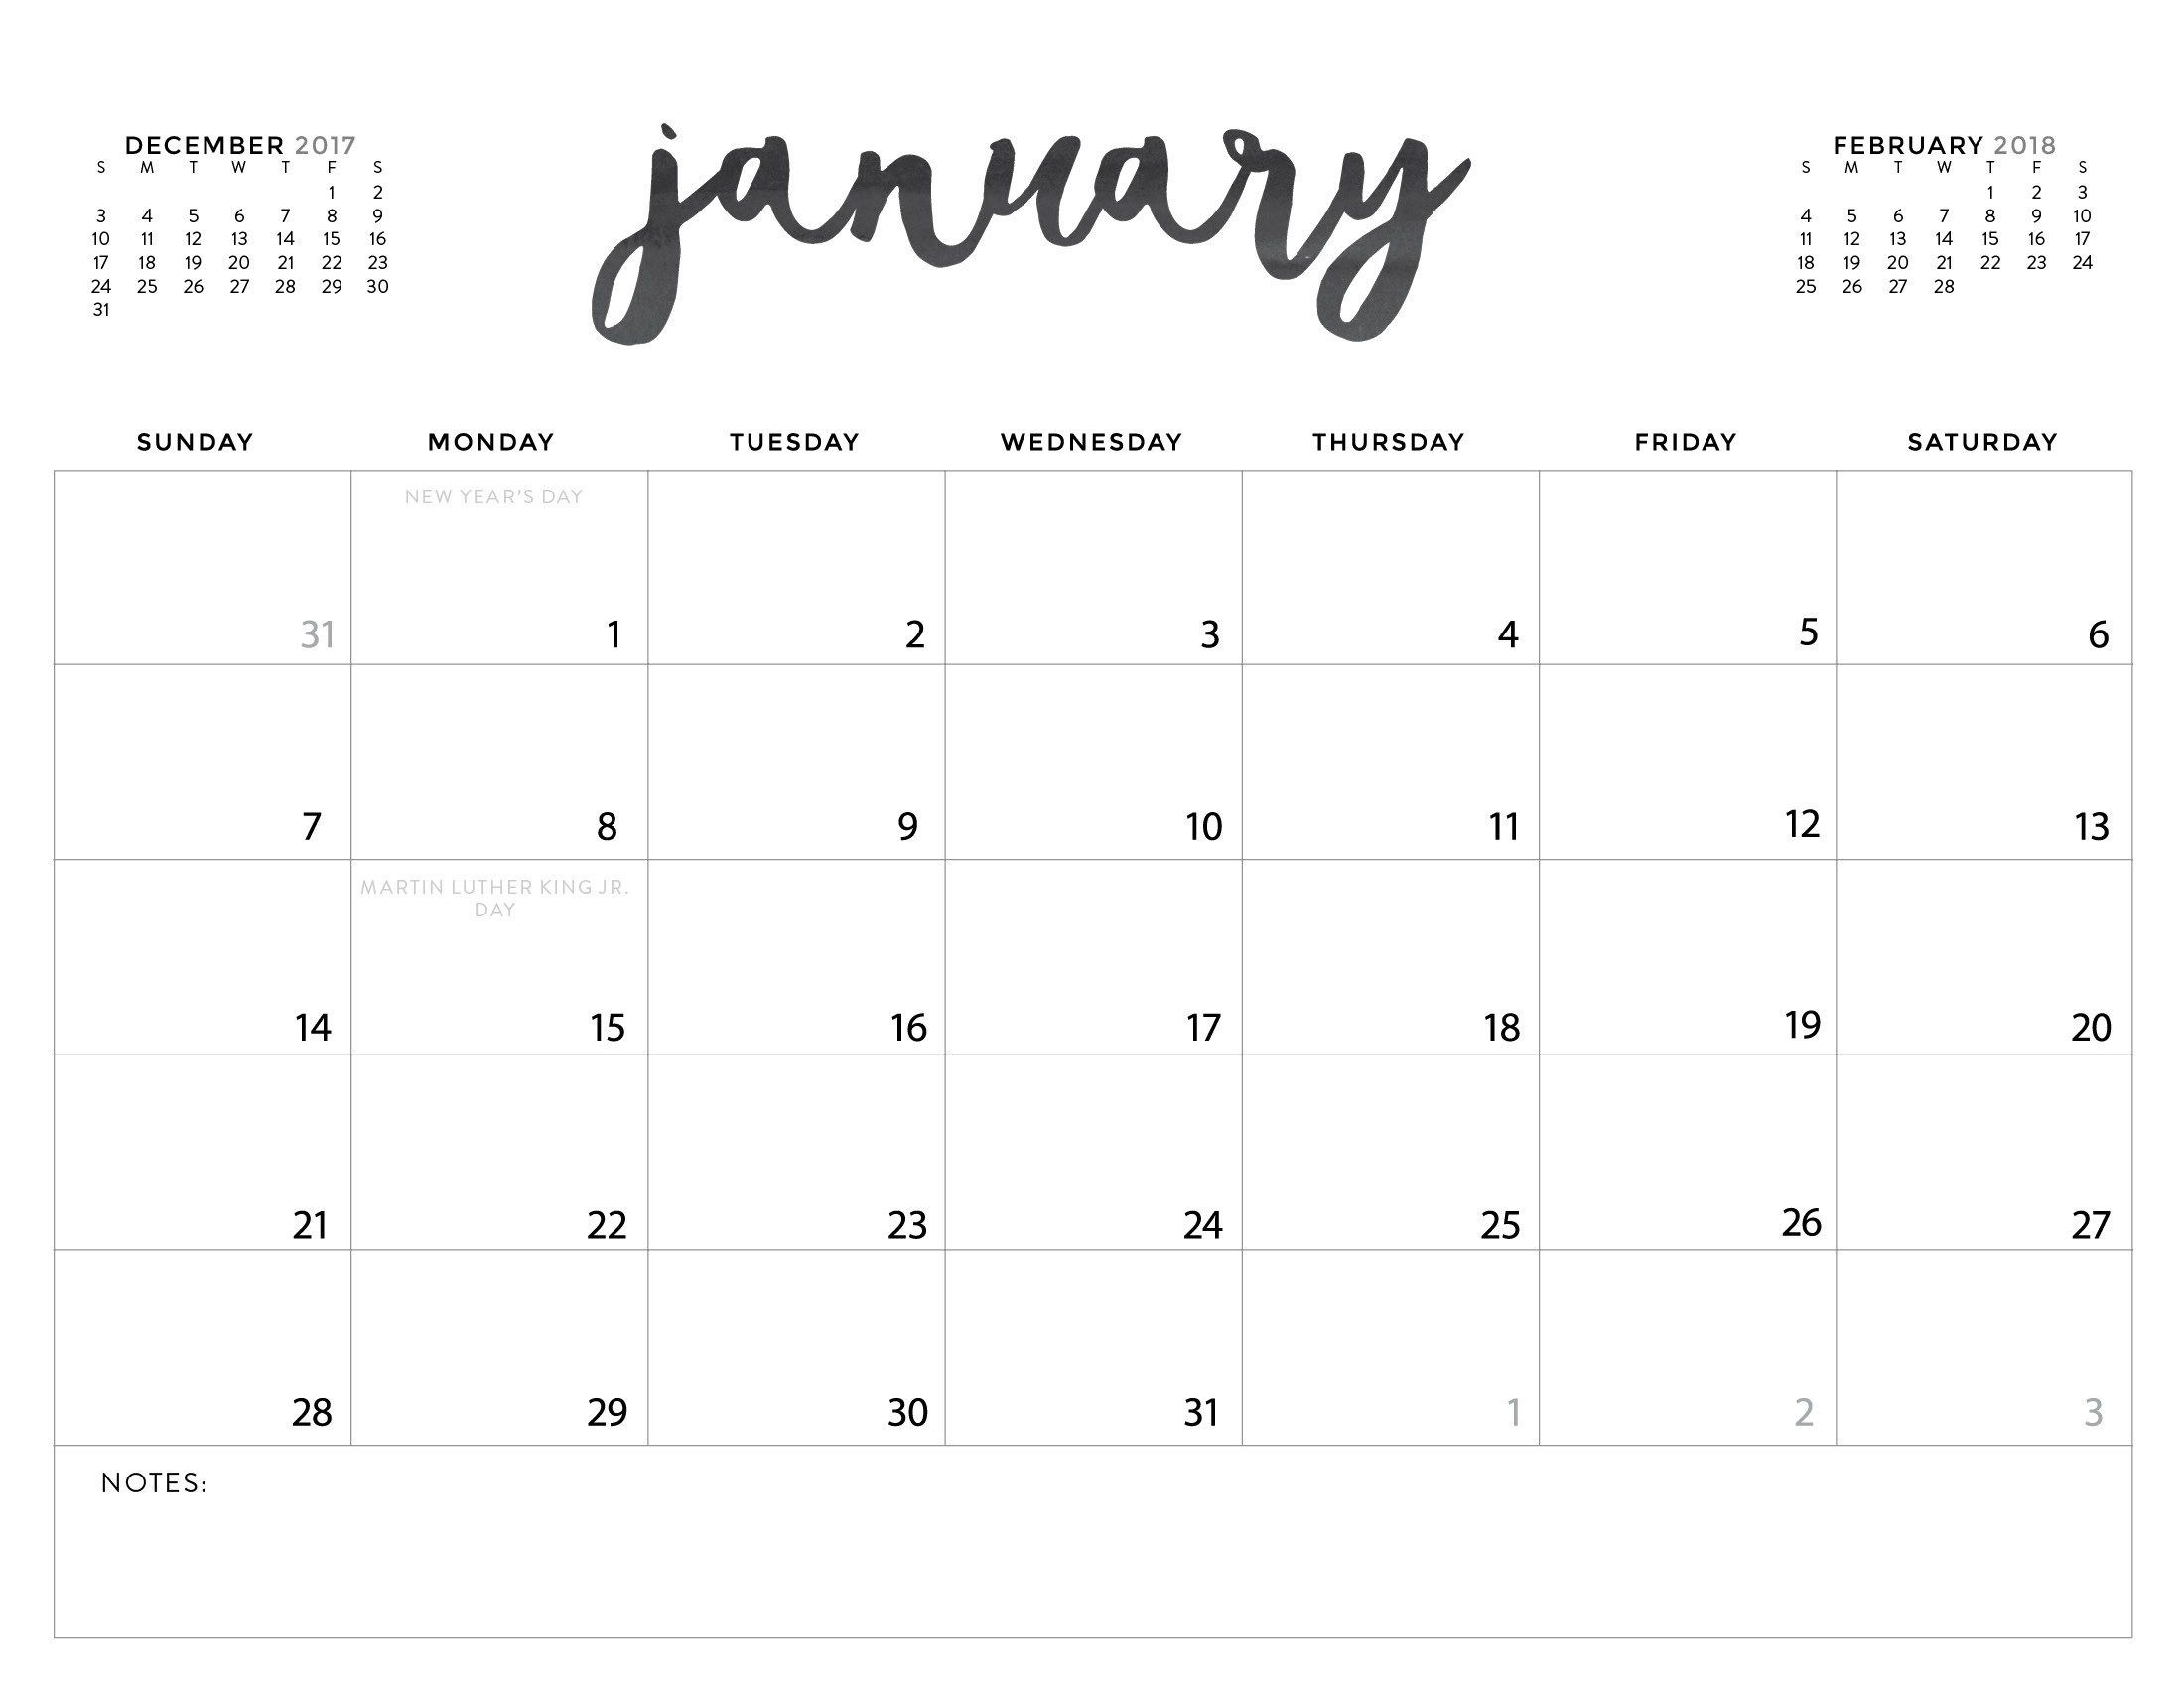 Download Your Free 2018 Printable Calendars Today! There Are-8.5 By 11 Blank Calendar Month